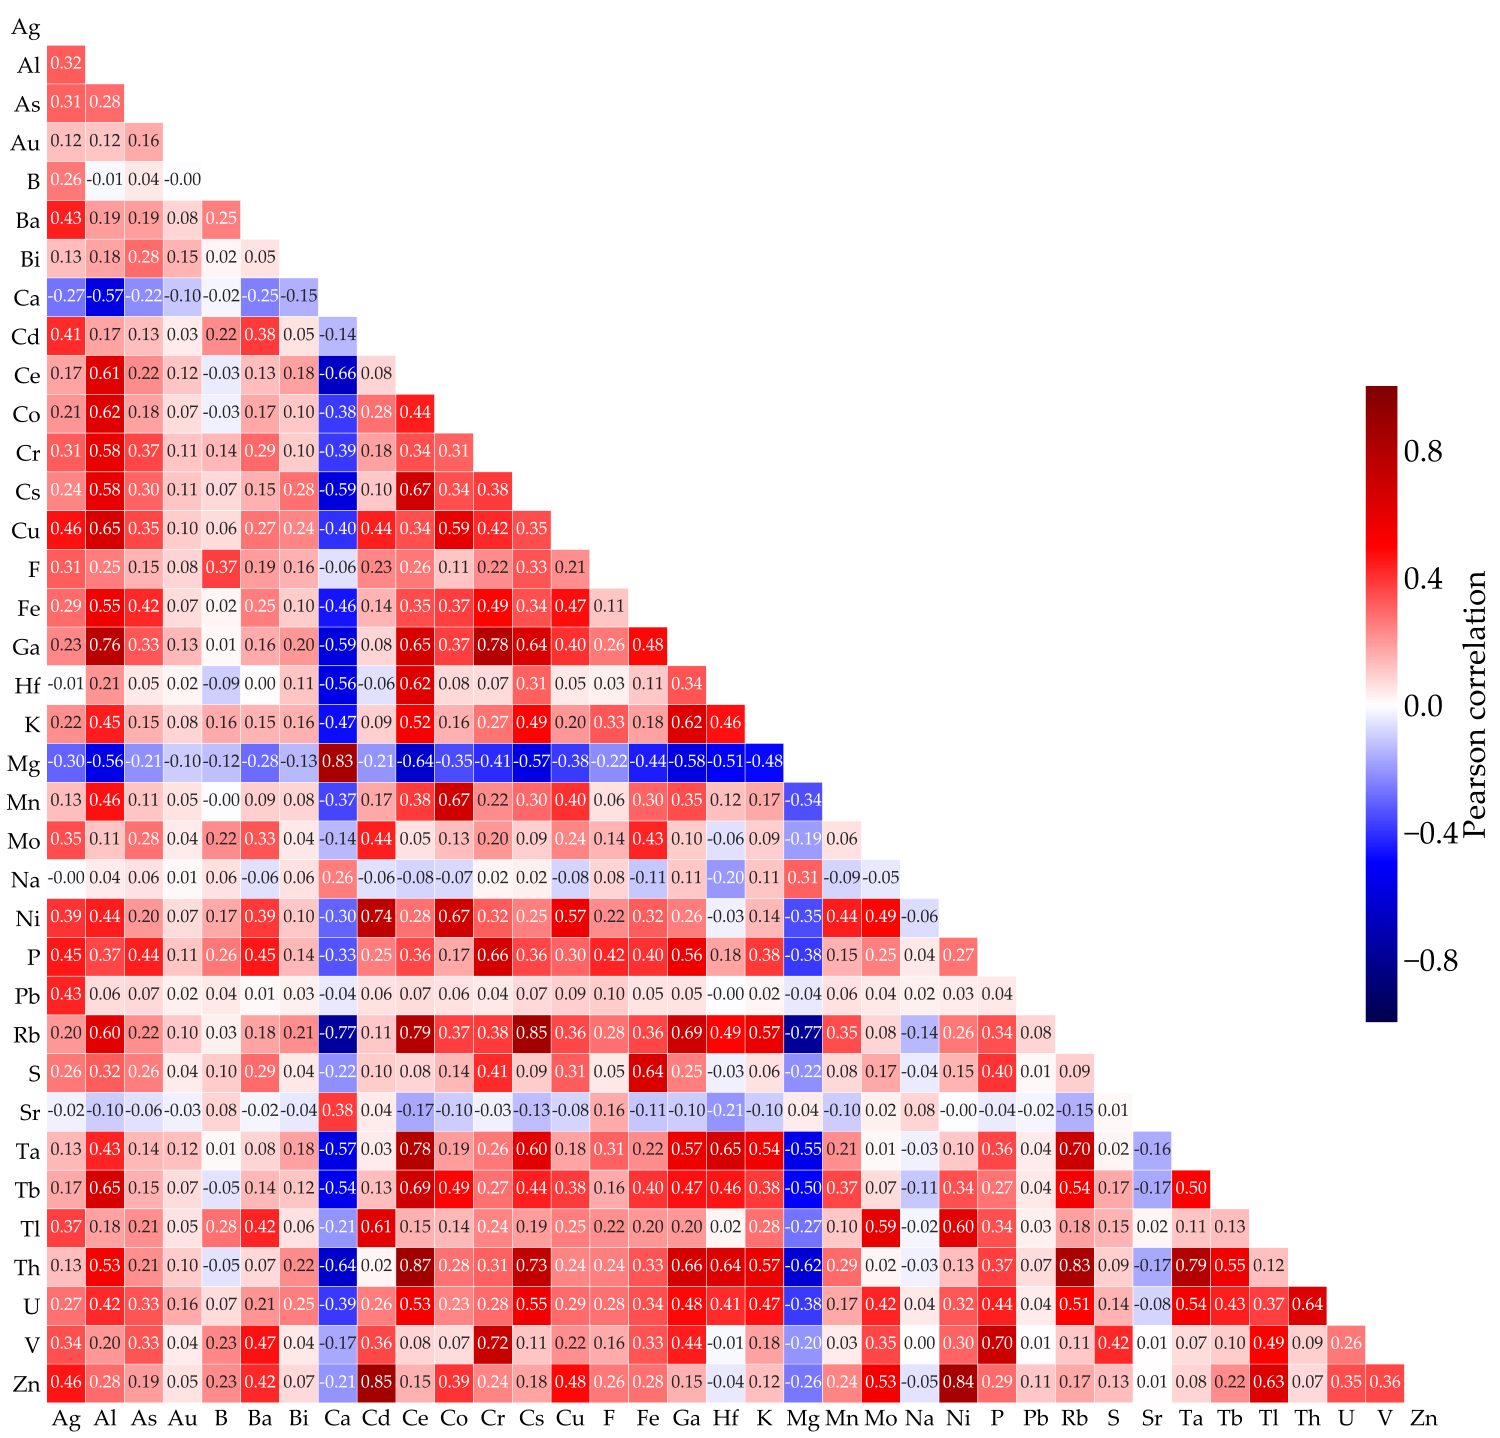 Correlation matrix between elemental data taken from the Northwest Territory's Geological Survey